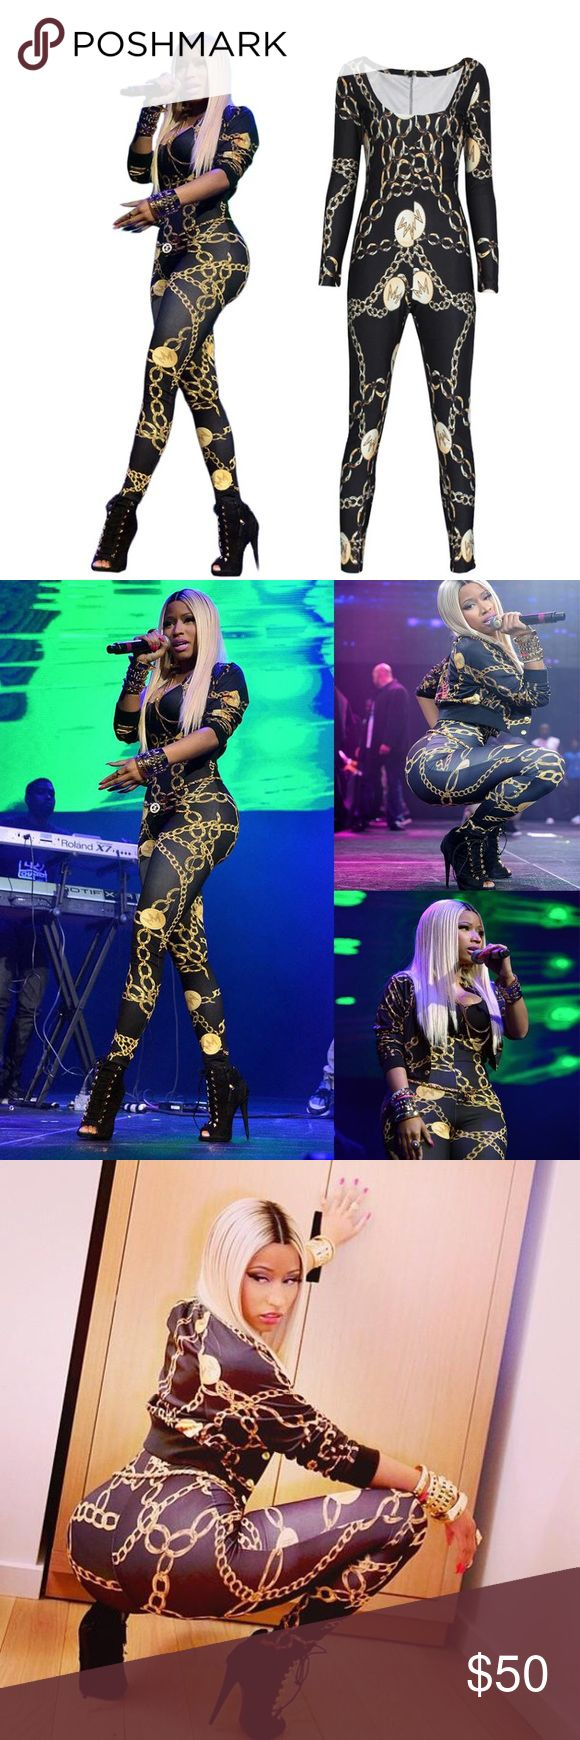 COMING! Nicki Minaj Gold Chain Patterned Jumpsuit Worn by the queen of rap at one of her concerts, this tight sexy gold chain patterned jumpsuit is perfect for any occasion. Style it with a gold chain belt and heels like Nicki Minaj did and you're ready to slay 😉 ✔️15% off 2 or more items when you bundle  ✔️Bundle with other listings and I'll offer you a private discount  ❌No trades  Tags: follow game share group followers trendy sexy cute celebrity Pants Jumpsuits & Rompers